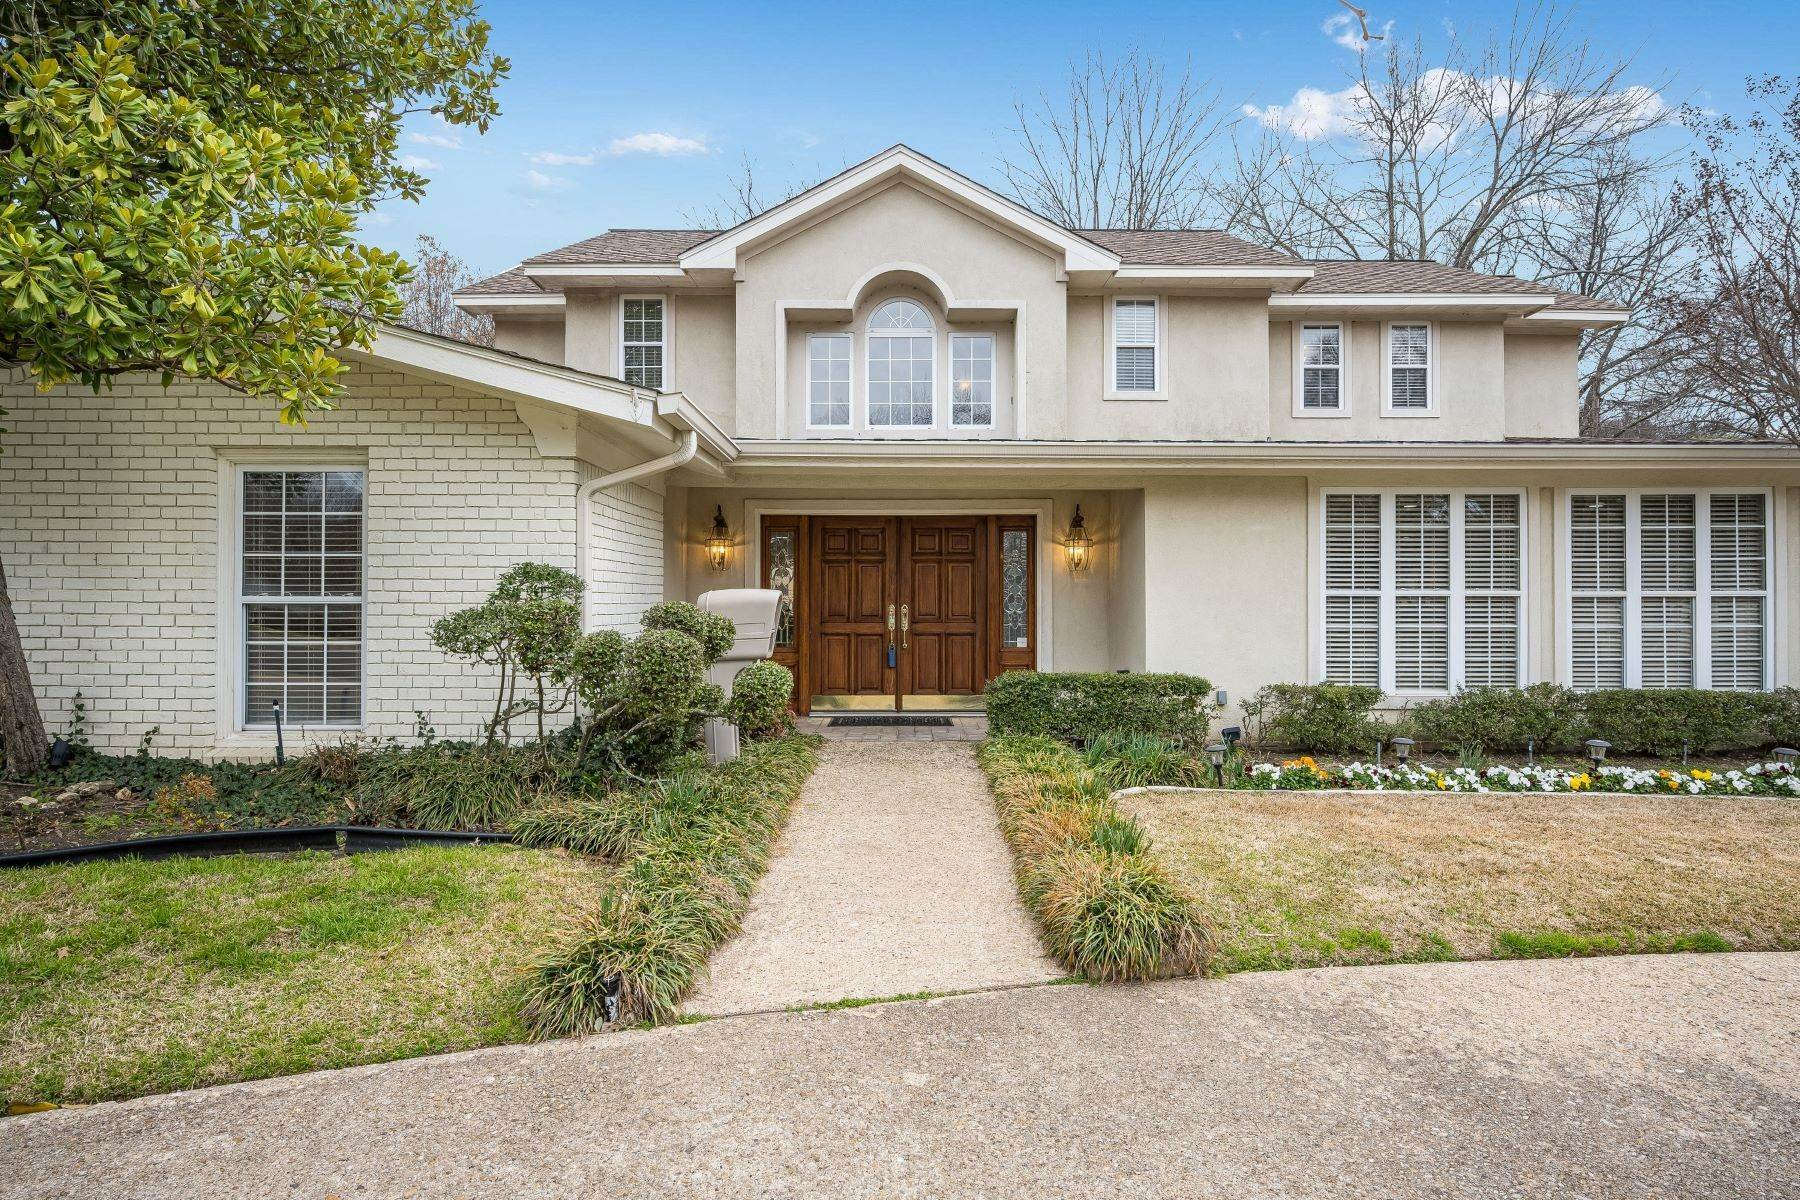 Single Family Homes for Sale at Four Bedroom Located on Large Corner Lot In The Heart of Desirable Tanglewood 3801 Trailwood Lane Fort Worth, Texas 76109 United States